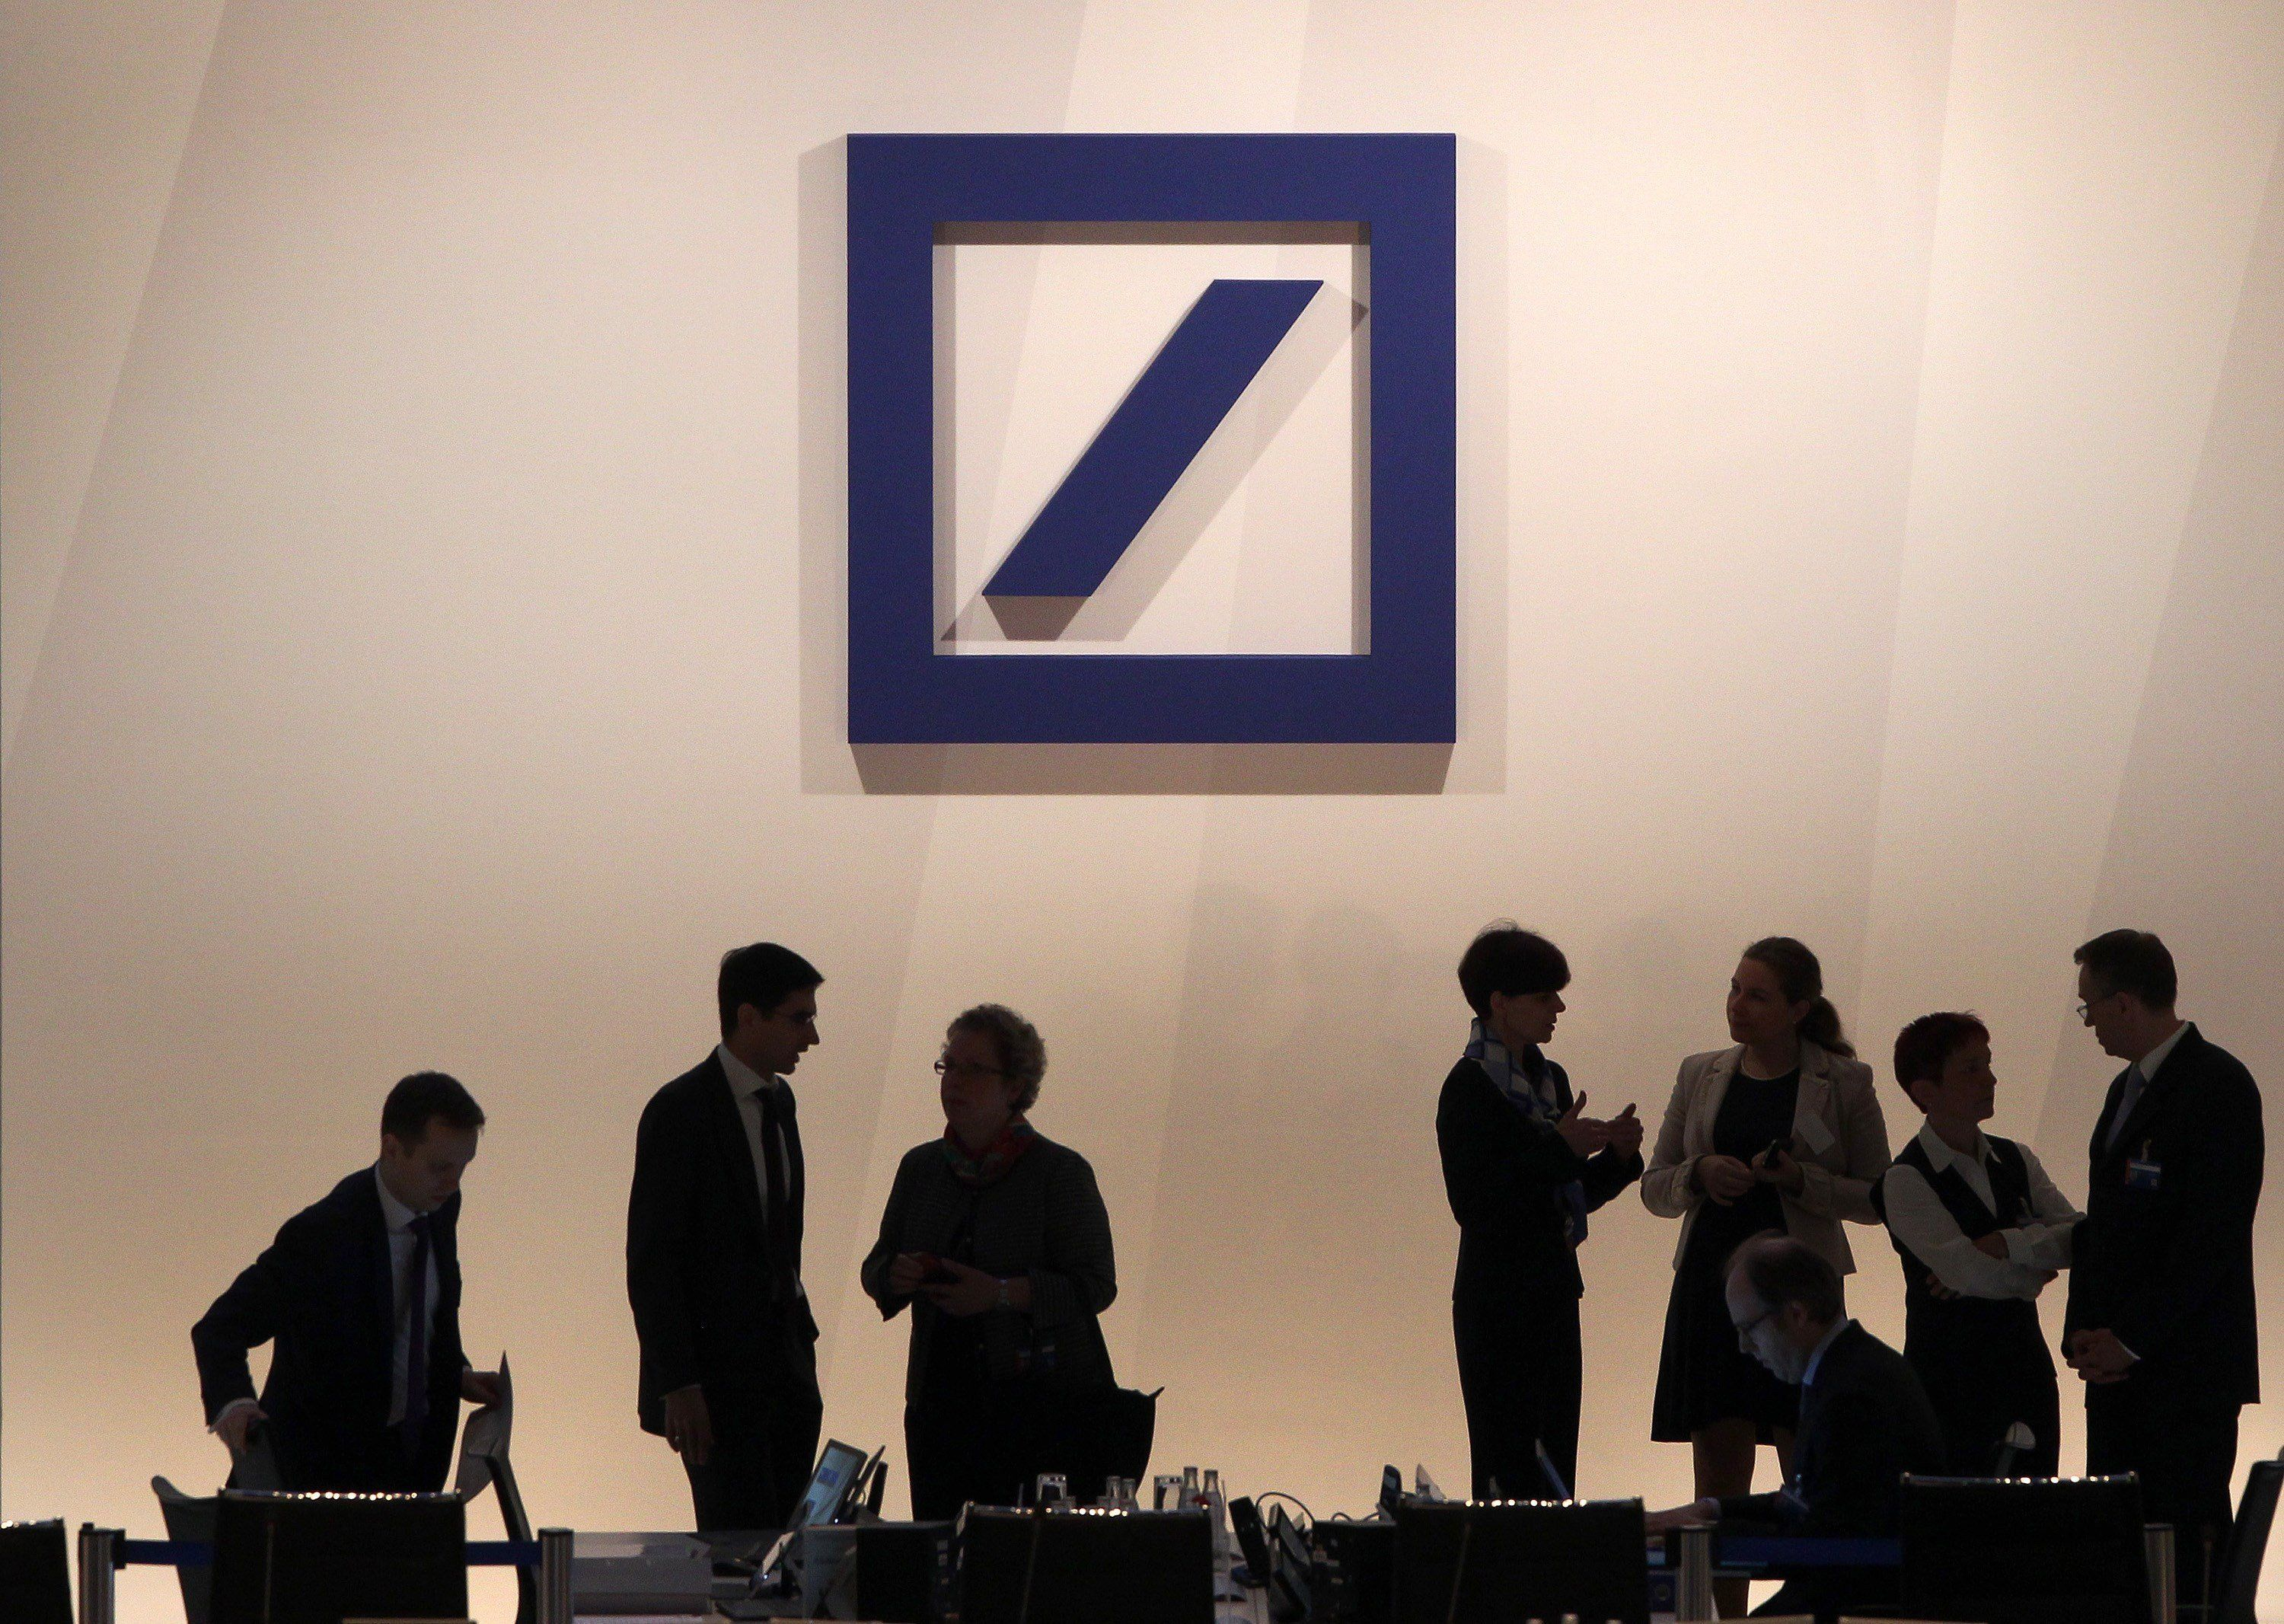 The logo of Deutsche Bank is pictured during the company's annual shareholder meeting in Frankfurt/Main, Germany, on May 21, 2015.  Deutsche Bank has launched an internal probe into its investments division in Russia, it said Wednesday, as the German media reported suspected money-laundering. AFP PHOTO / DANIEL ROLAND        (Photo credit should read DANIEL ROLAND/AFP/Getty Images)